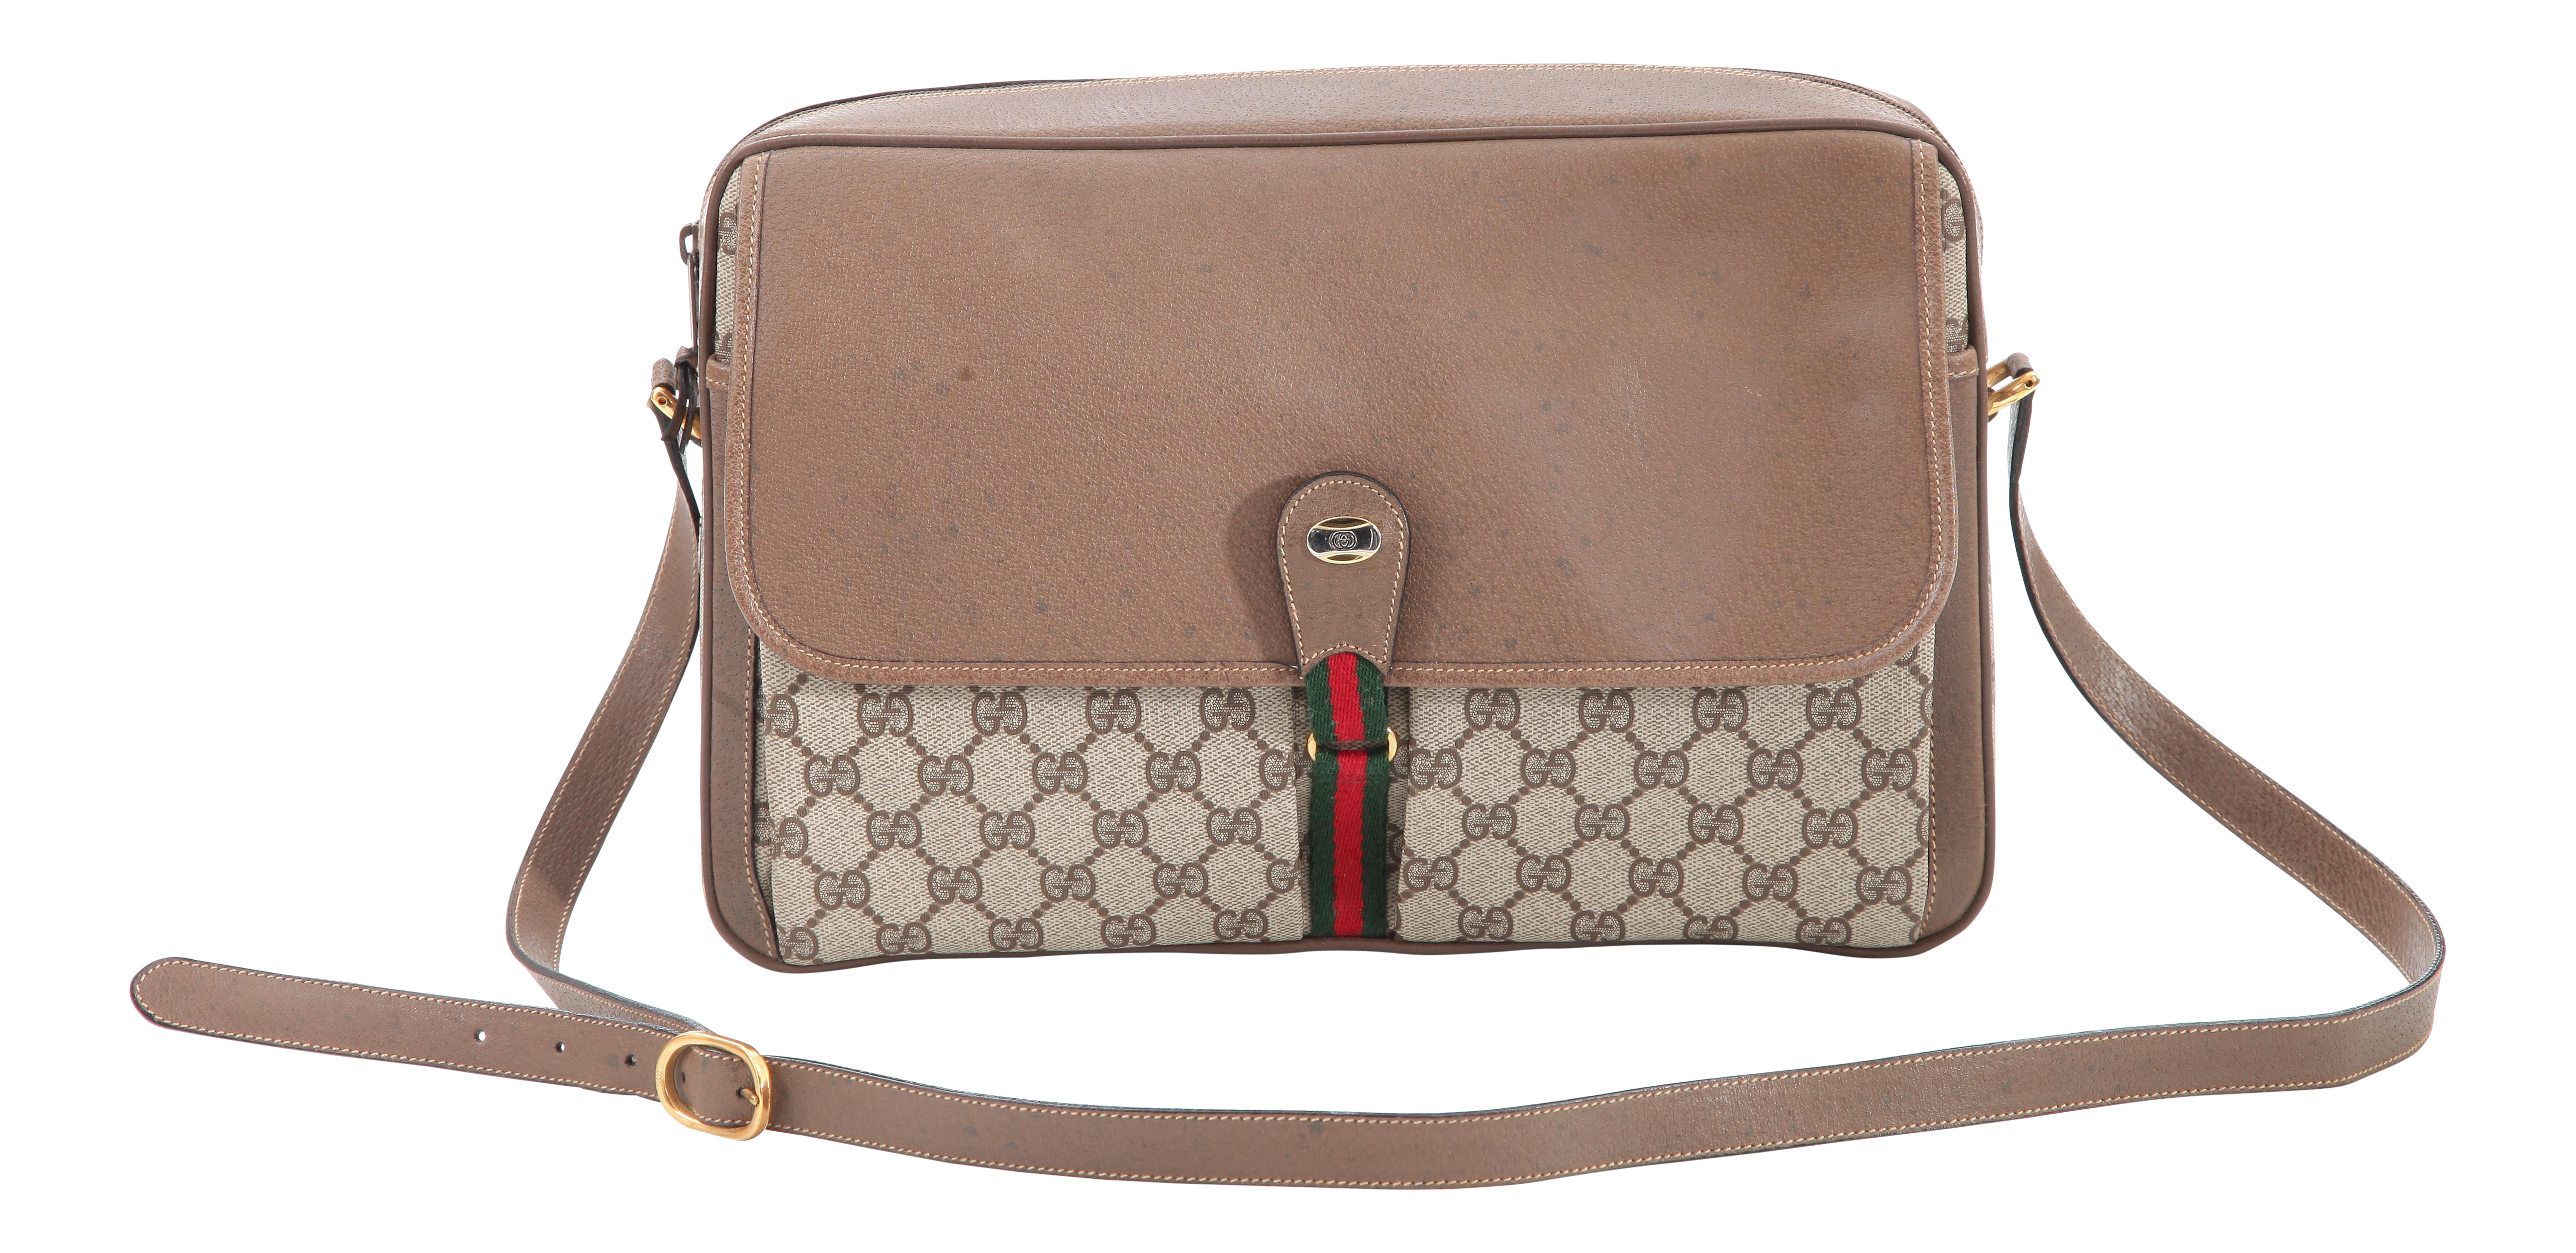 57faf80bf1eb Vintage Gucci Accessory Collection Era Class Monogram Messenger Bag |  Chairish